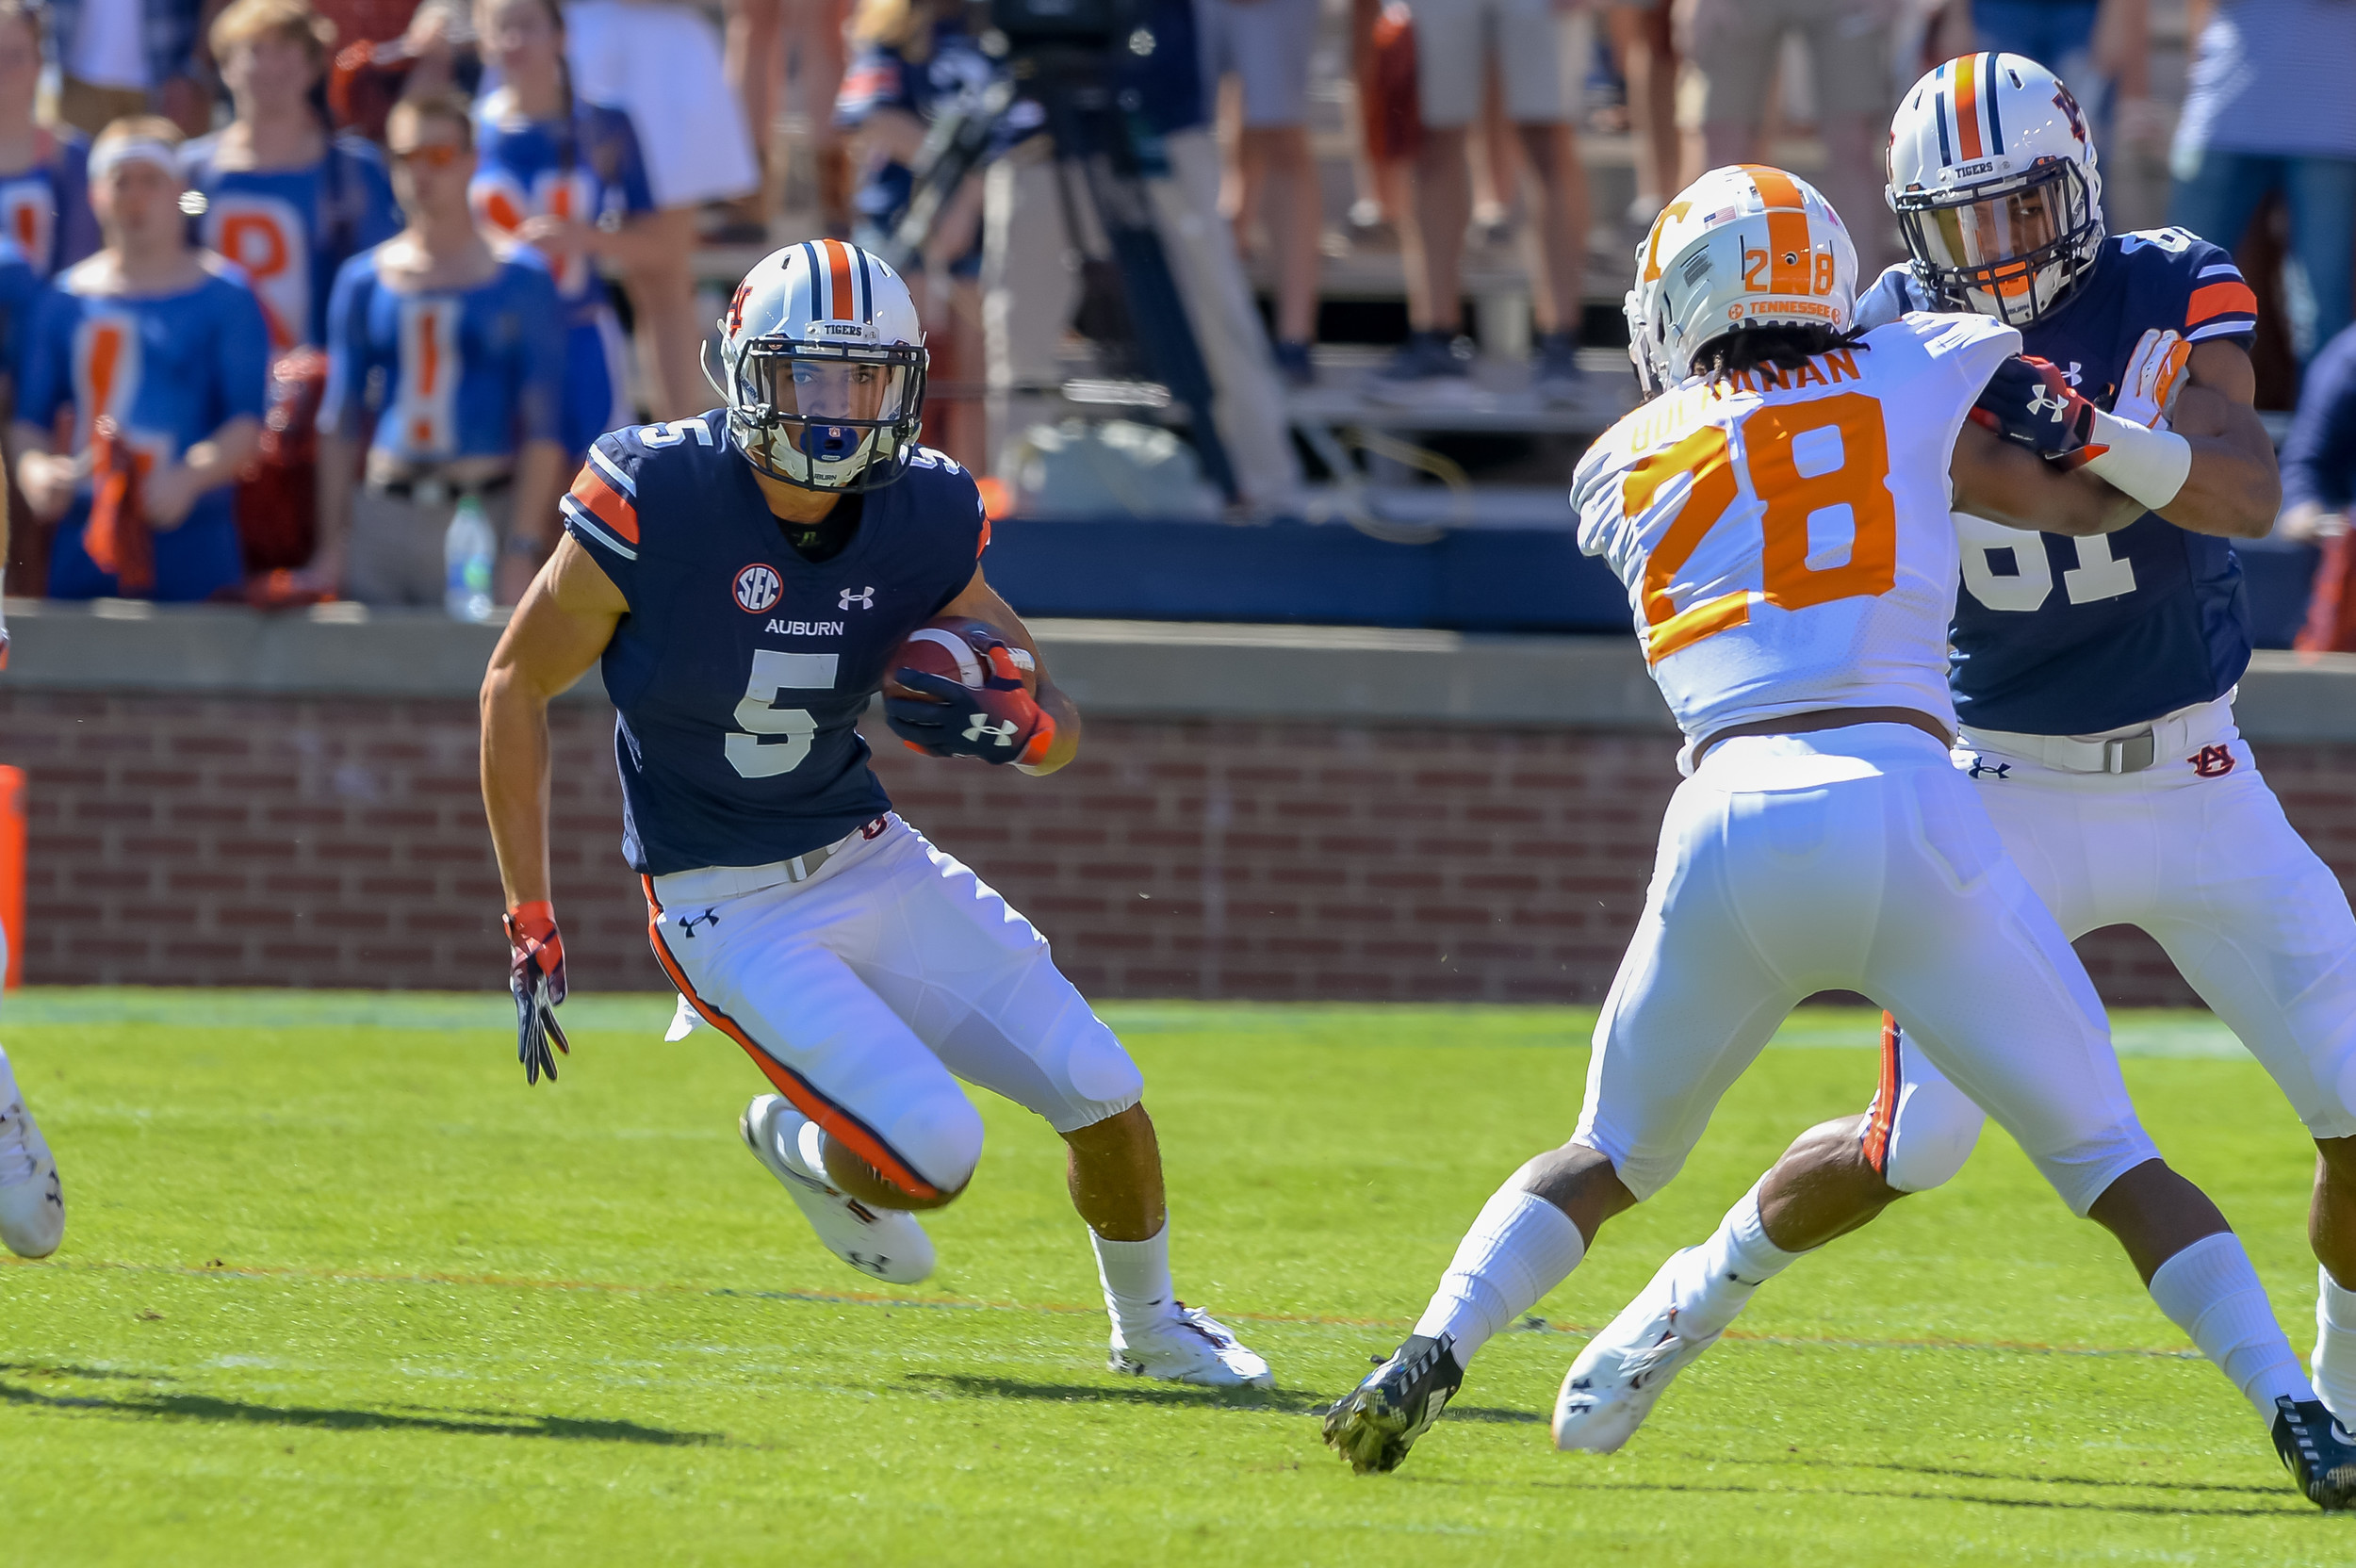 Auburn Tigers wide receiver Anthony Schwartz (5) runs during the first half of Saturday's game, at Jordan-Hare Stadium in Auburn, AL. Daily Mountain Eagle -  Jeff Johnsey